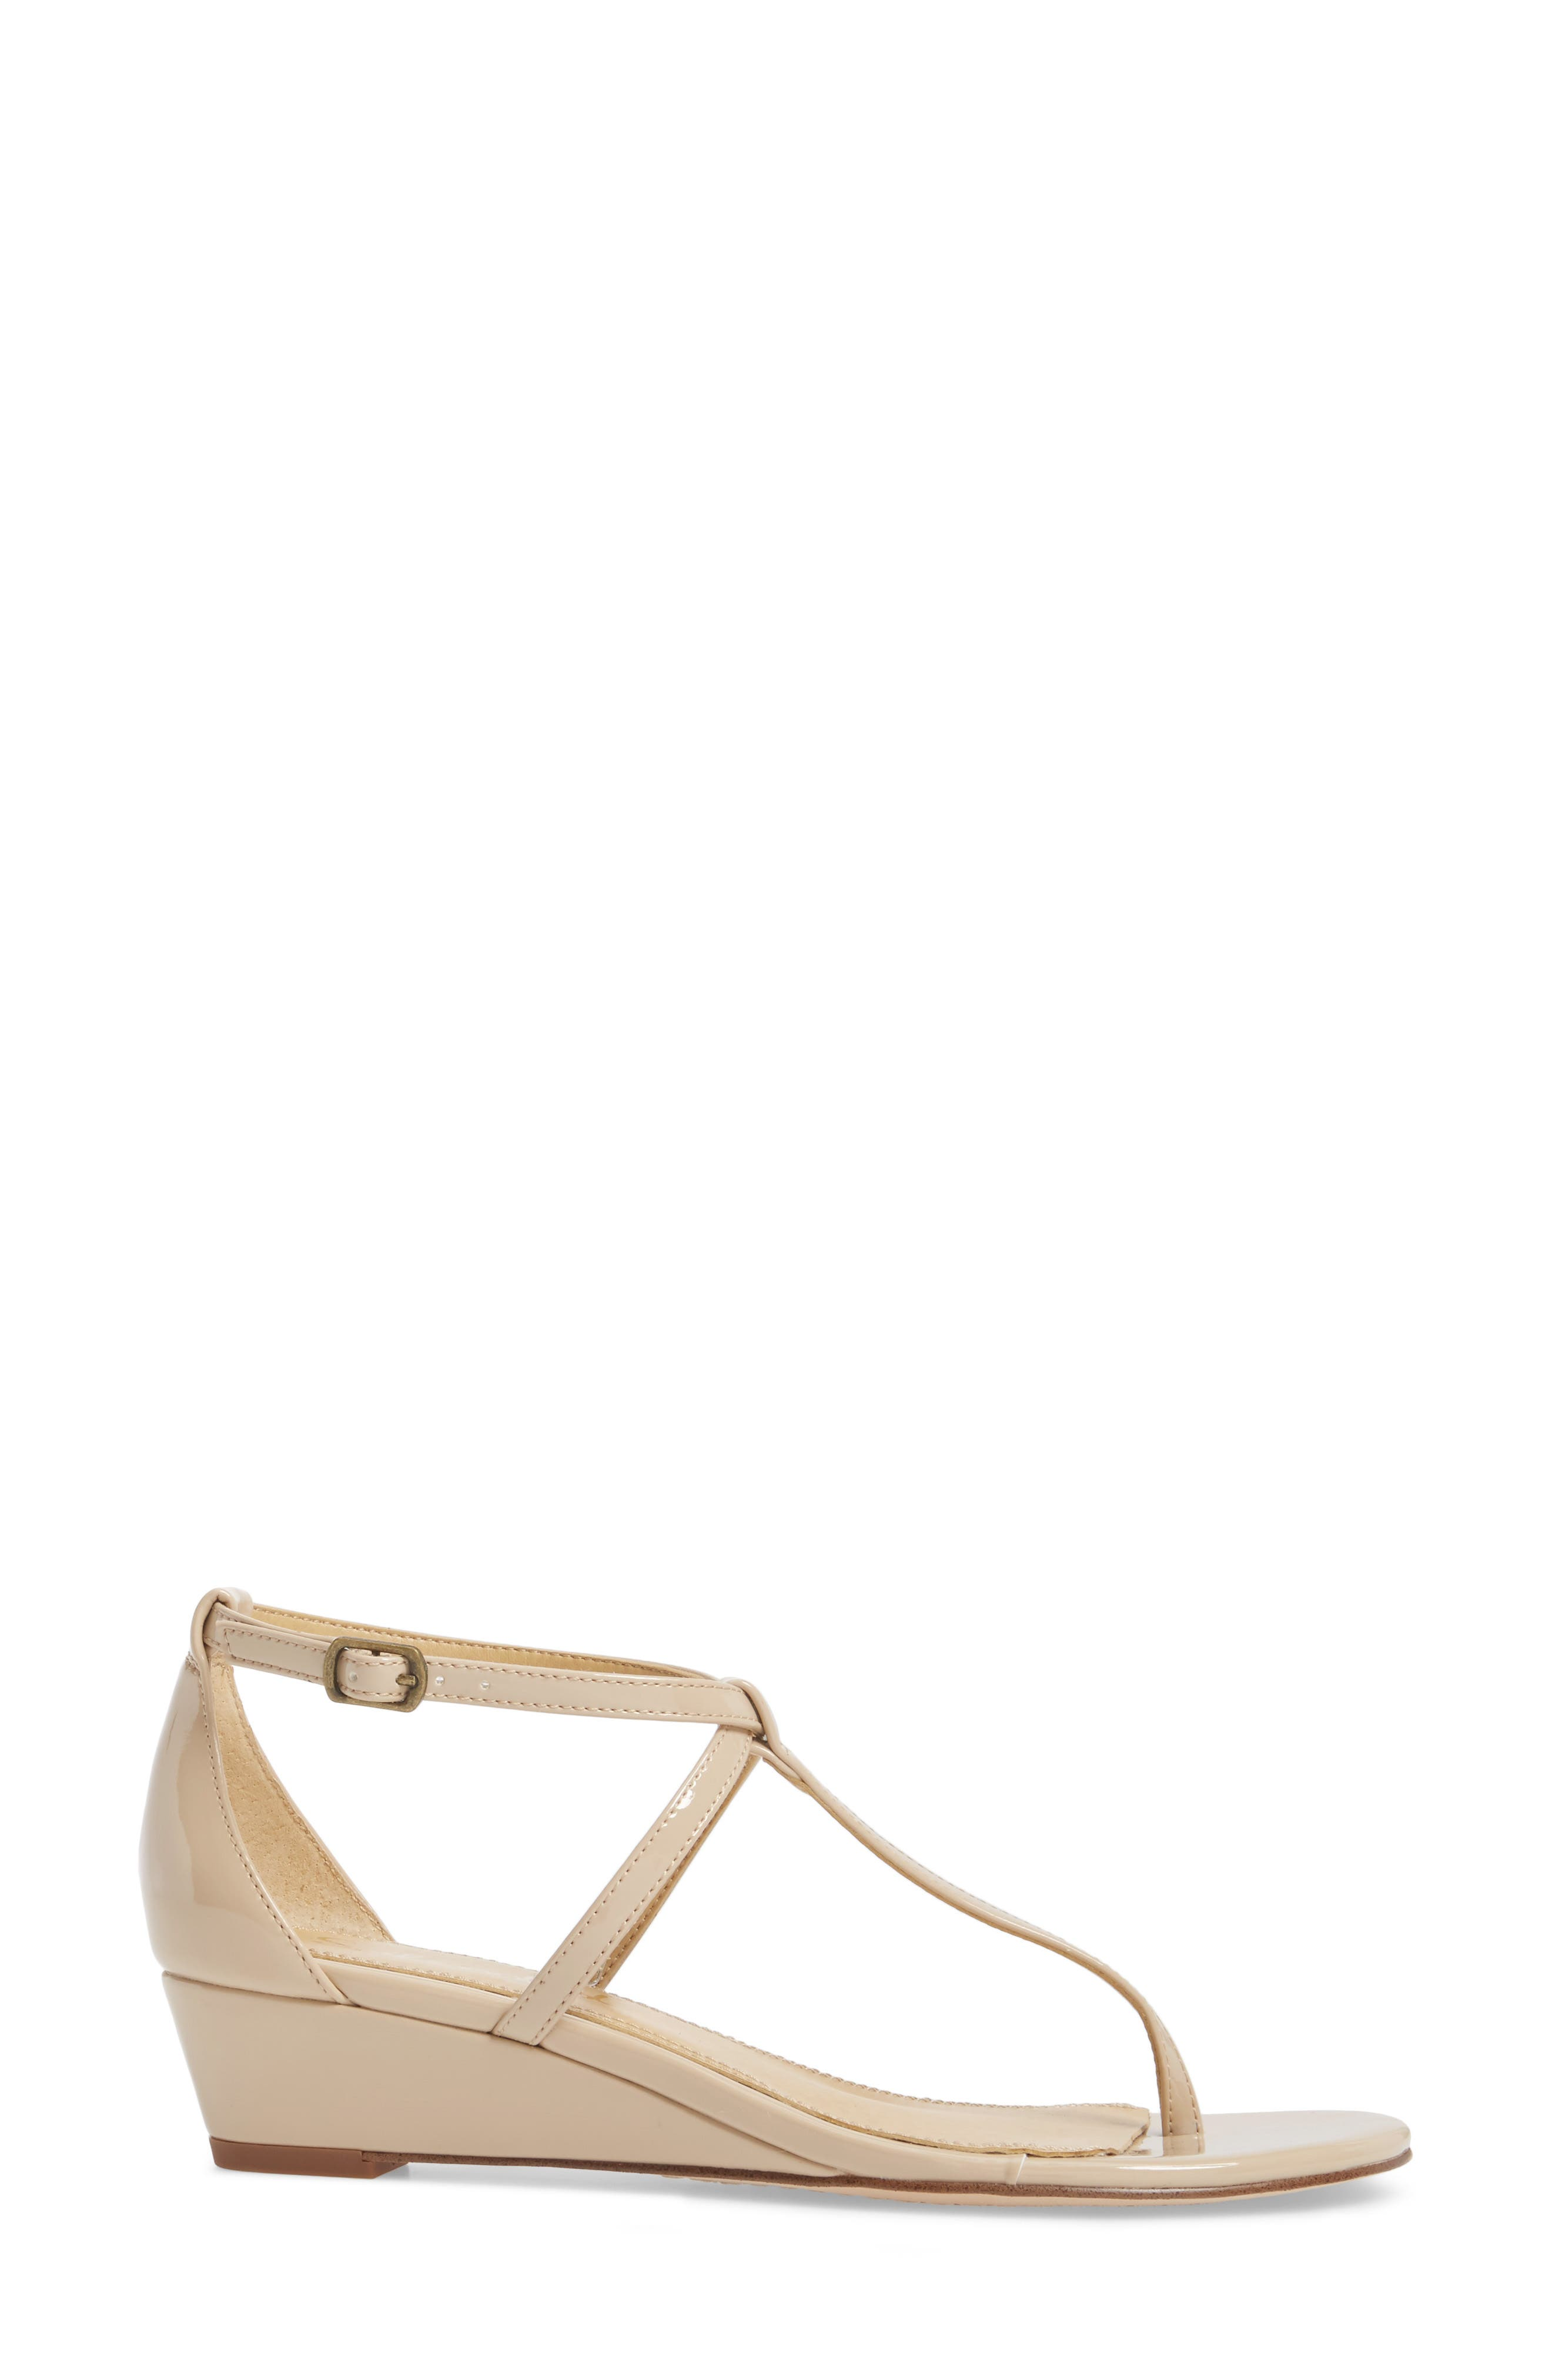 Bryce T-Strap Wedge Sandal,                             Alternate thumbnail 15, color,